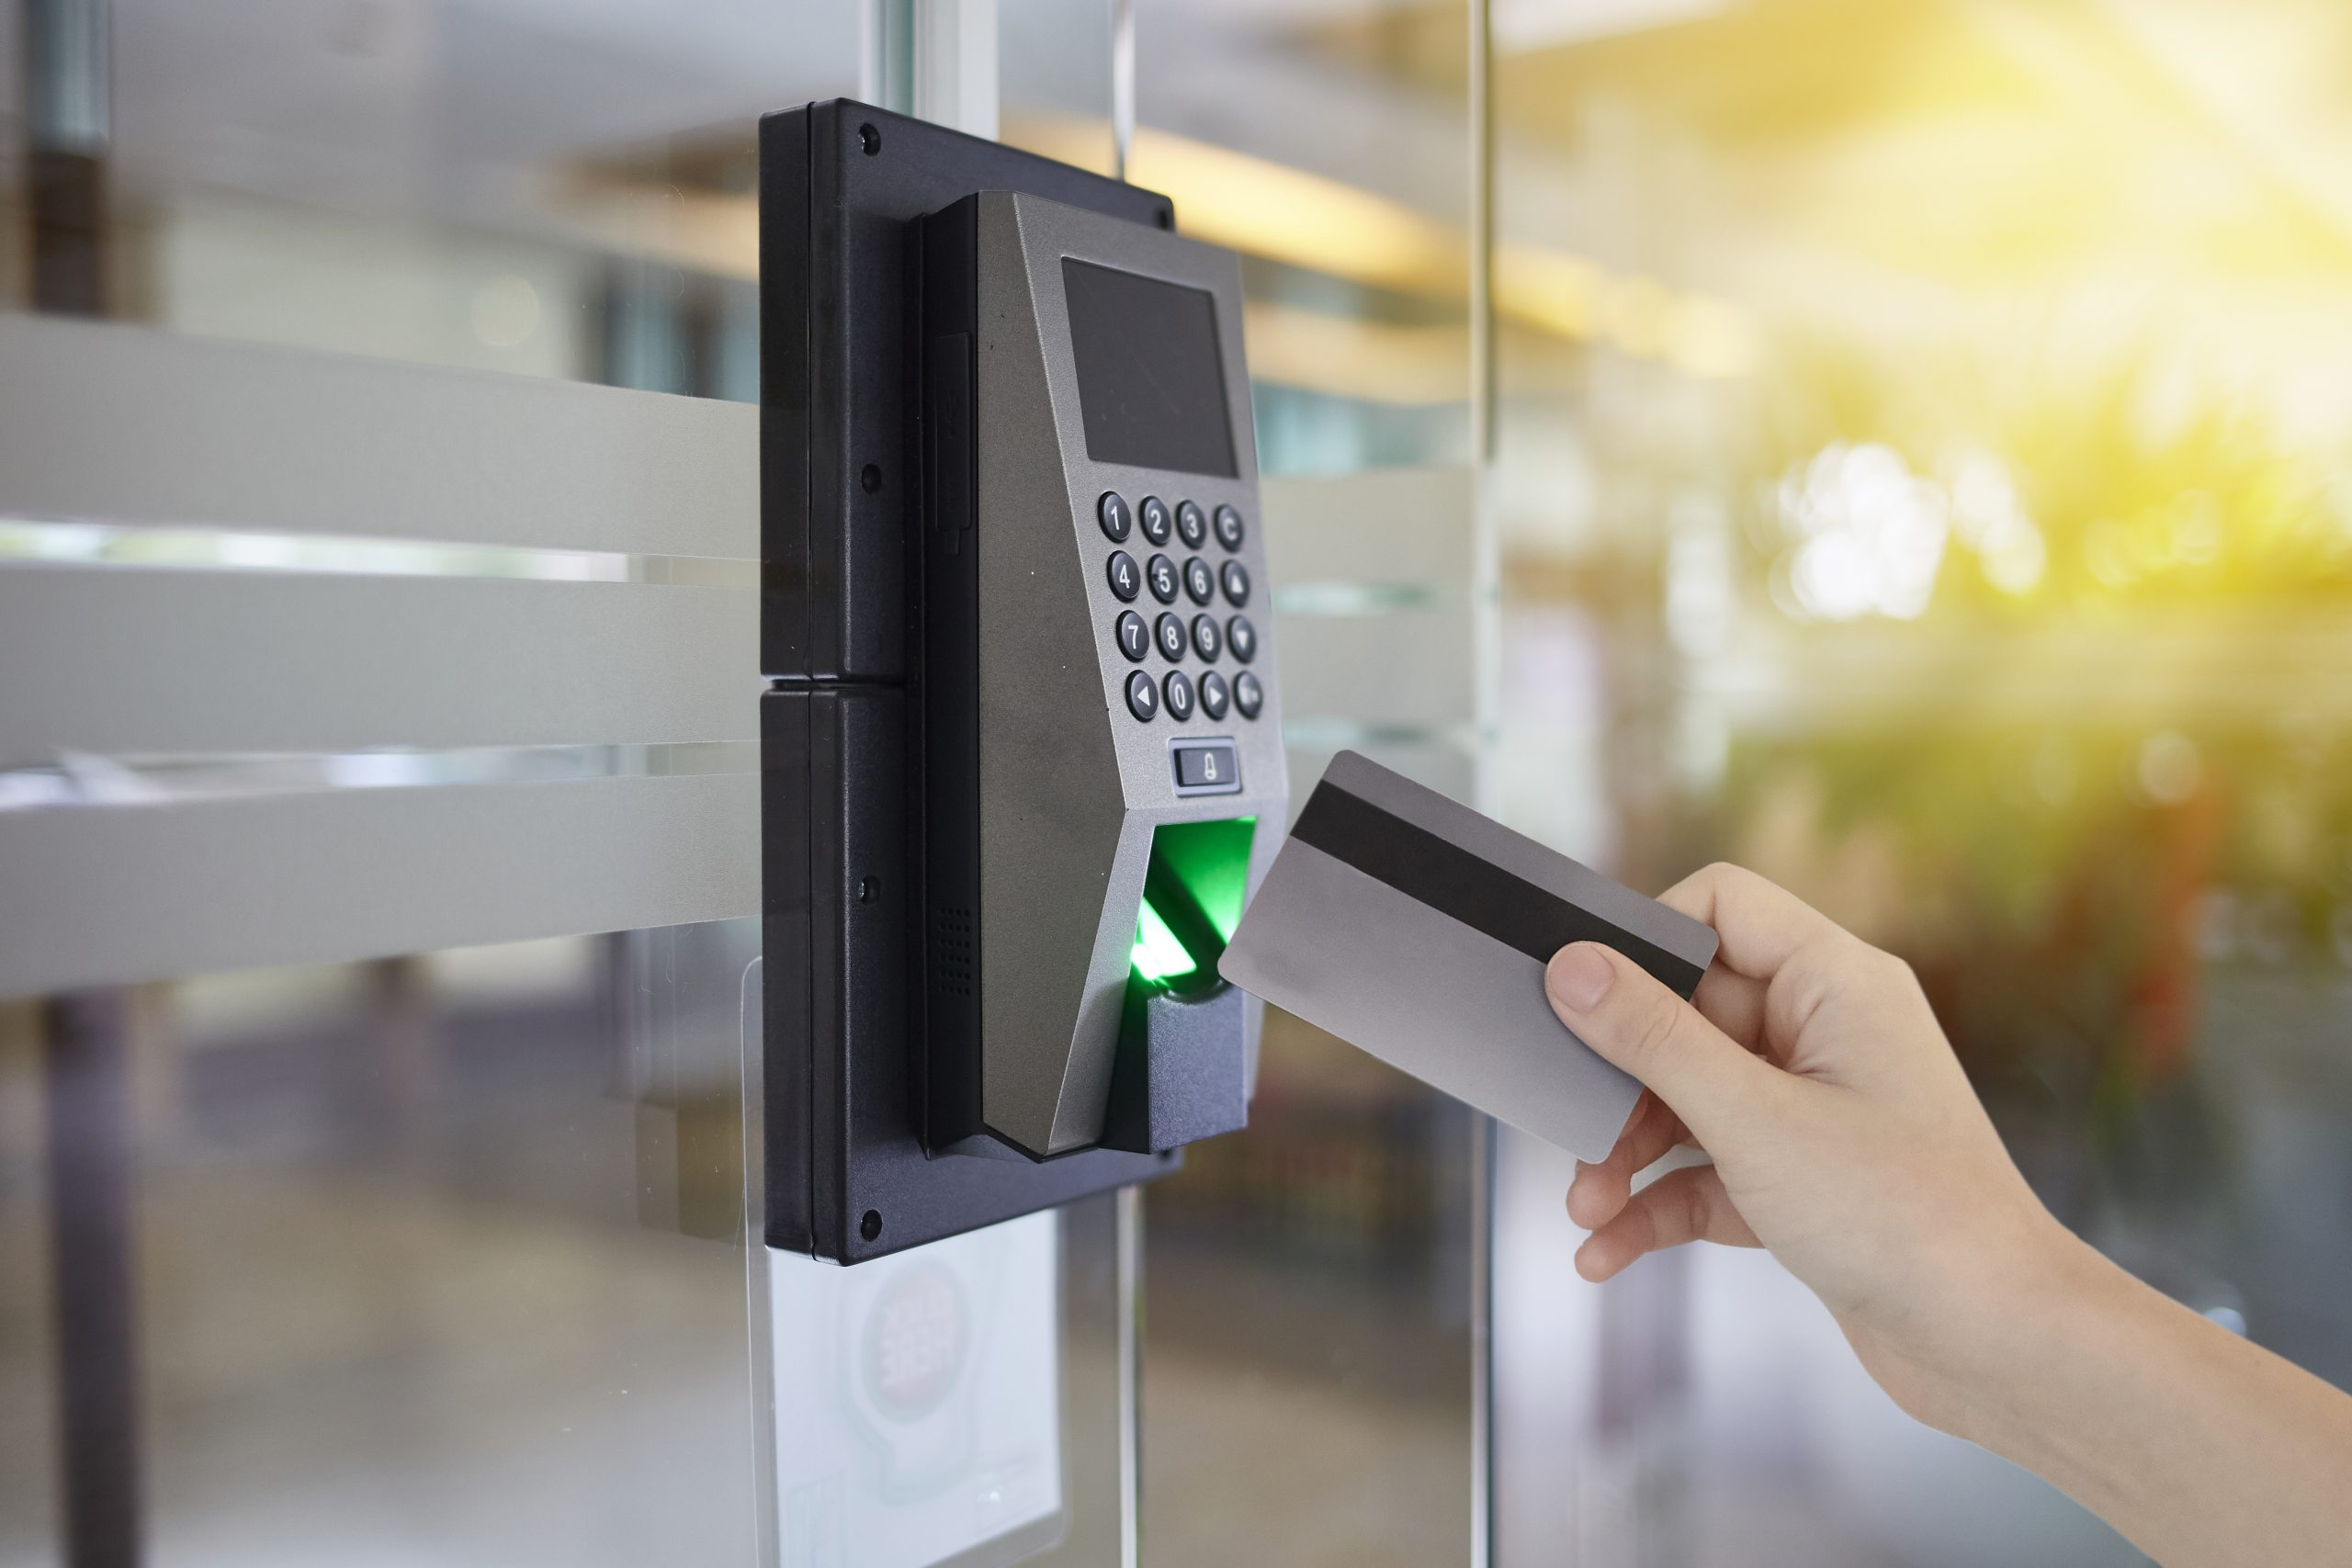 a person using a proximity card with CCTV